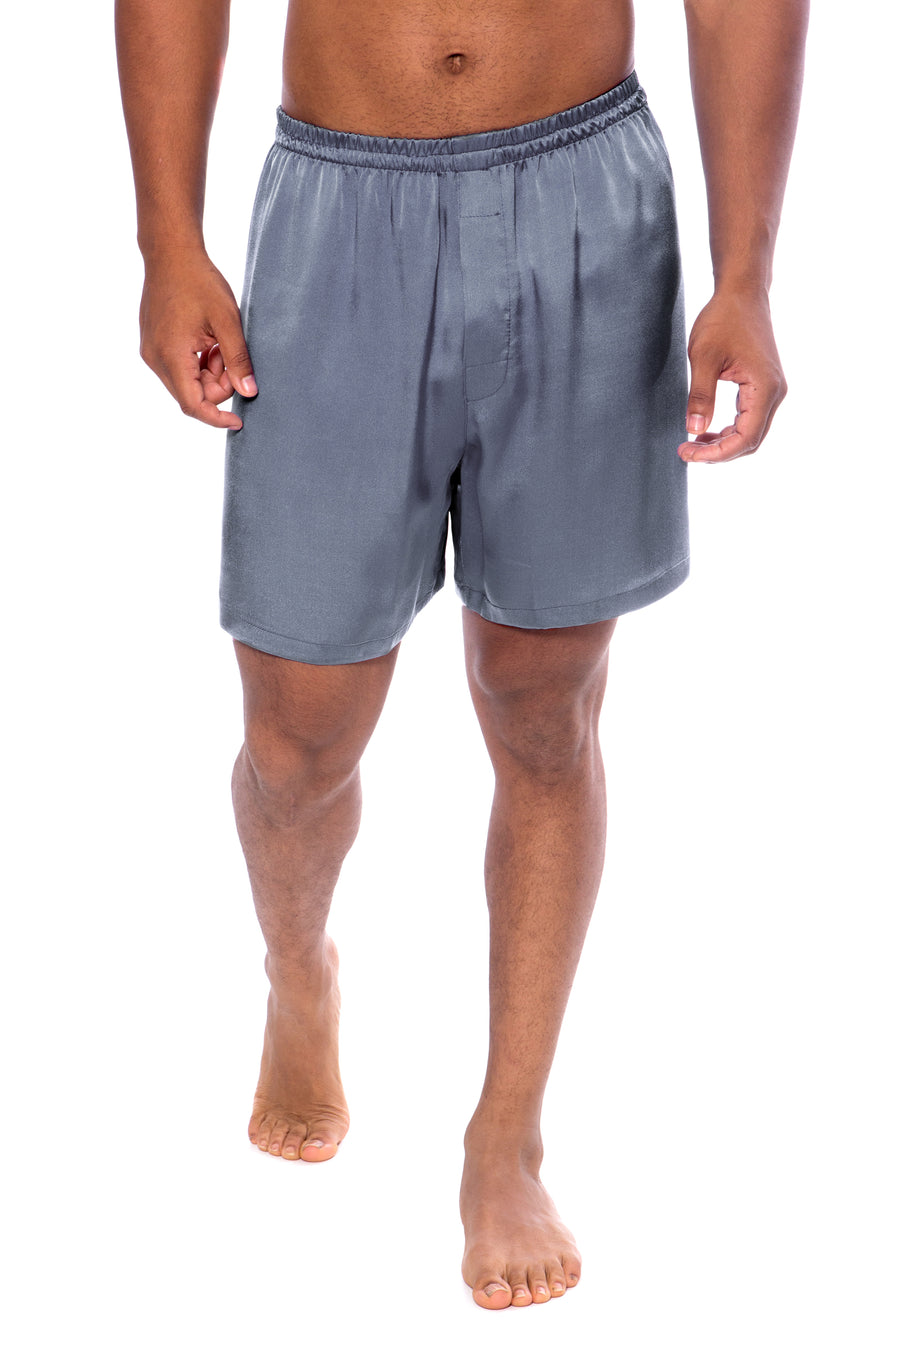 Country Club - Men's Silk Boxers - TexereSilk